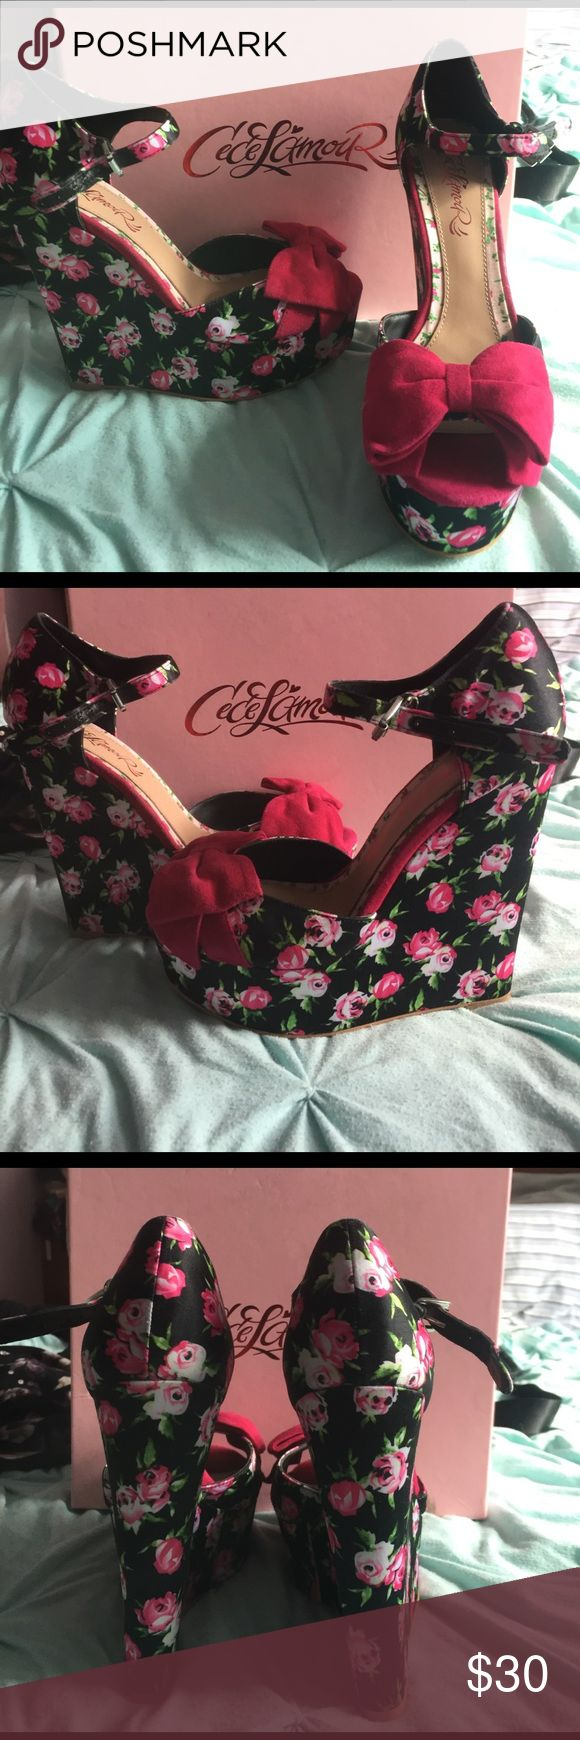 """Floral garden party hot pink bow wedges These wedges are 6"""" tall, but surprisingly comfy! Black with pink flowers on them with big pink bows on the front! Perfect for tea, spring parties or weddings! Only worn a few times. cece lamour Shoes Wedges"""